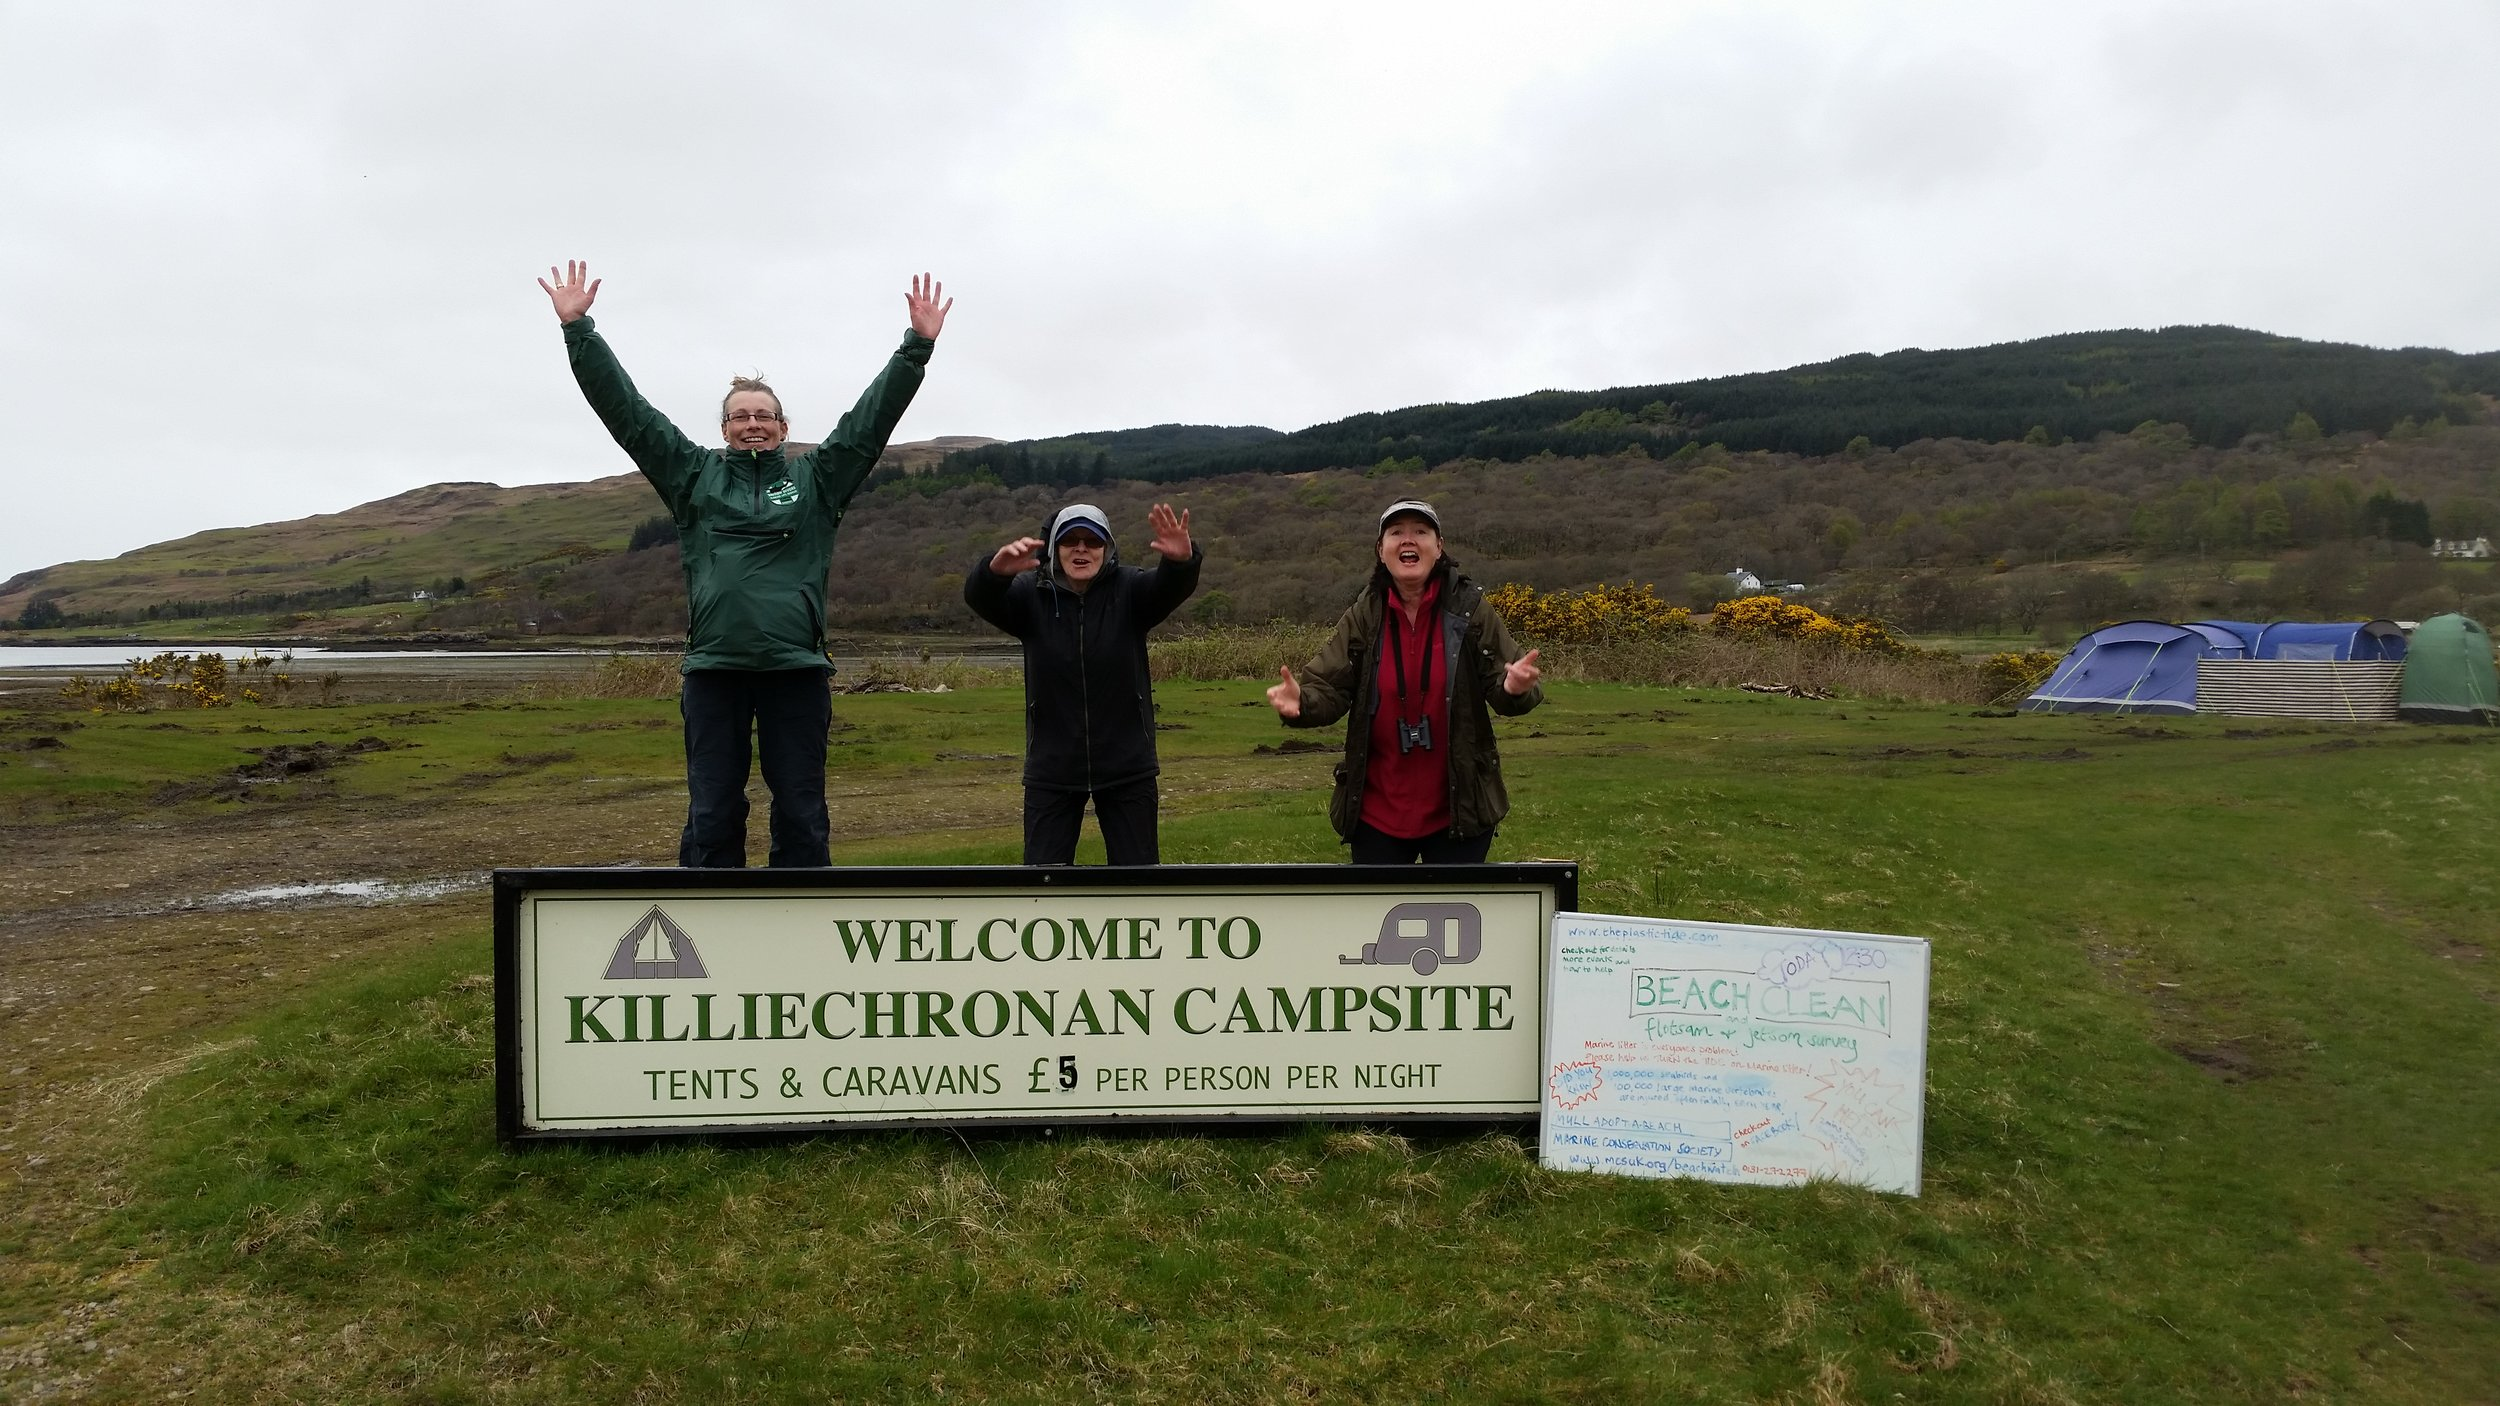 Janie, Cathy and Marie at various stages of the beach clean jump at our hosts campsite.